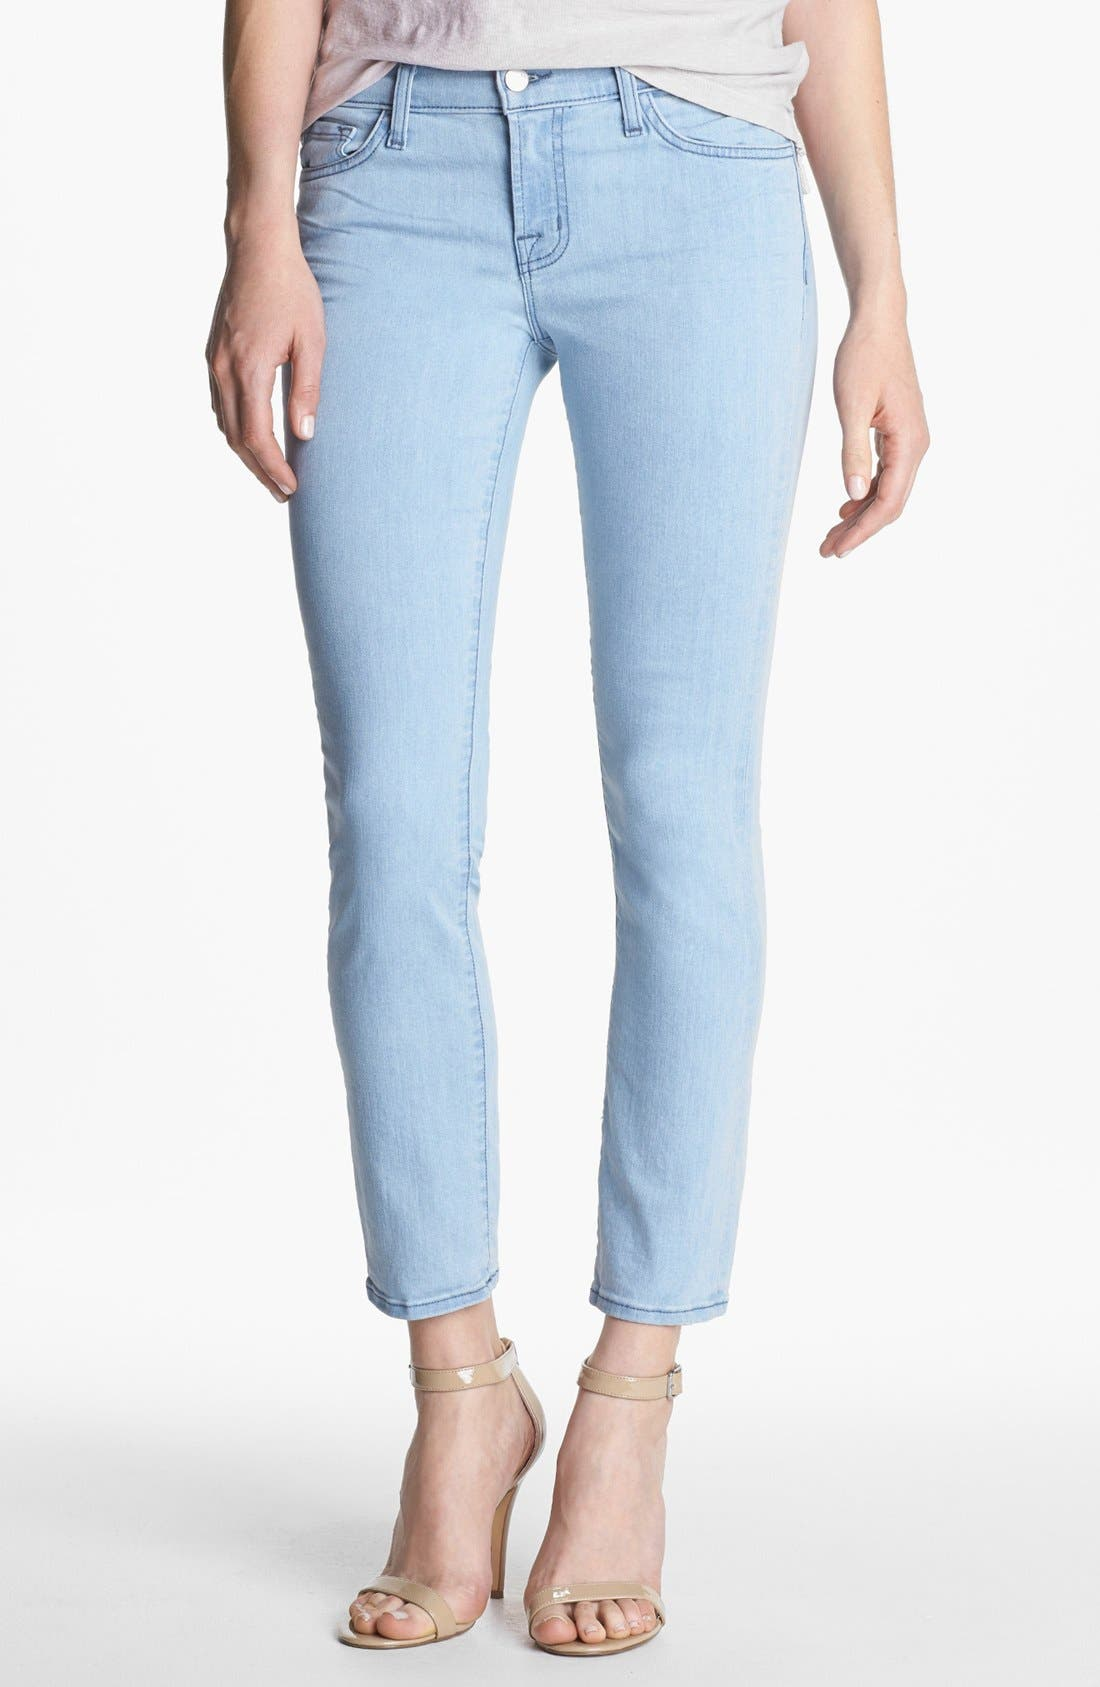 Alternate Image 1 Selected - J Brand Pencil Leg Stretch Jeans (Beautiful Blue)